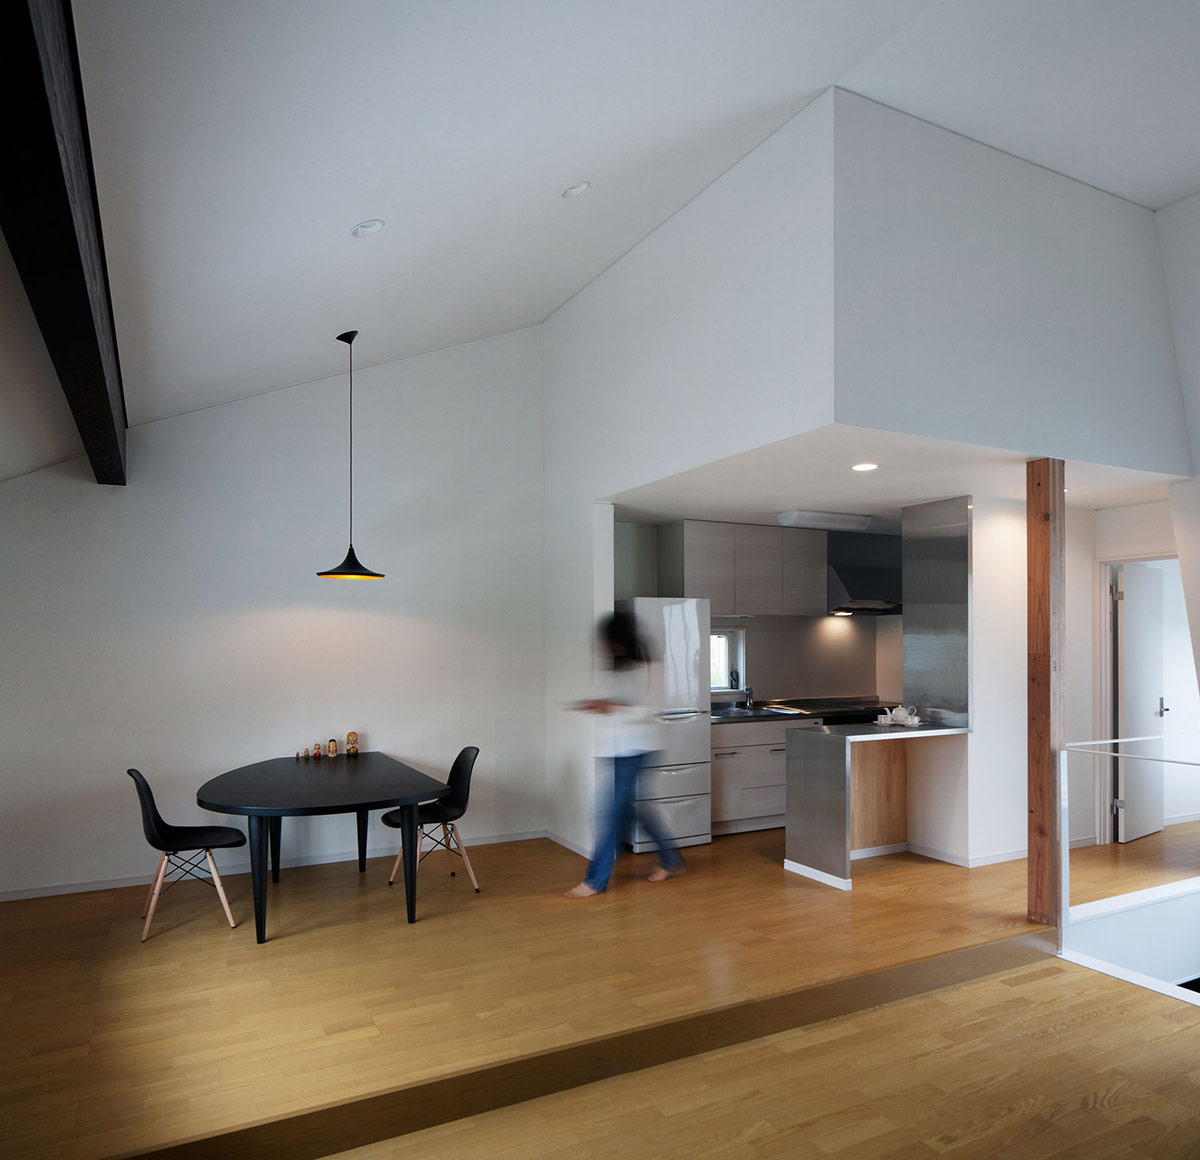 Kitchen, Dining, Hansha Reflection House, Nagoya, Japan